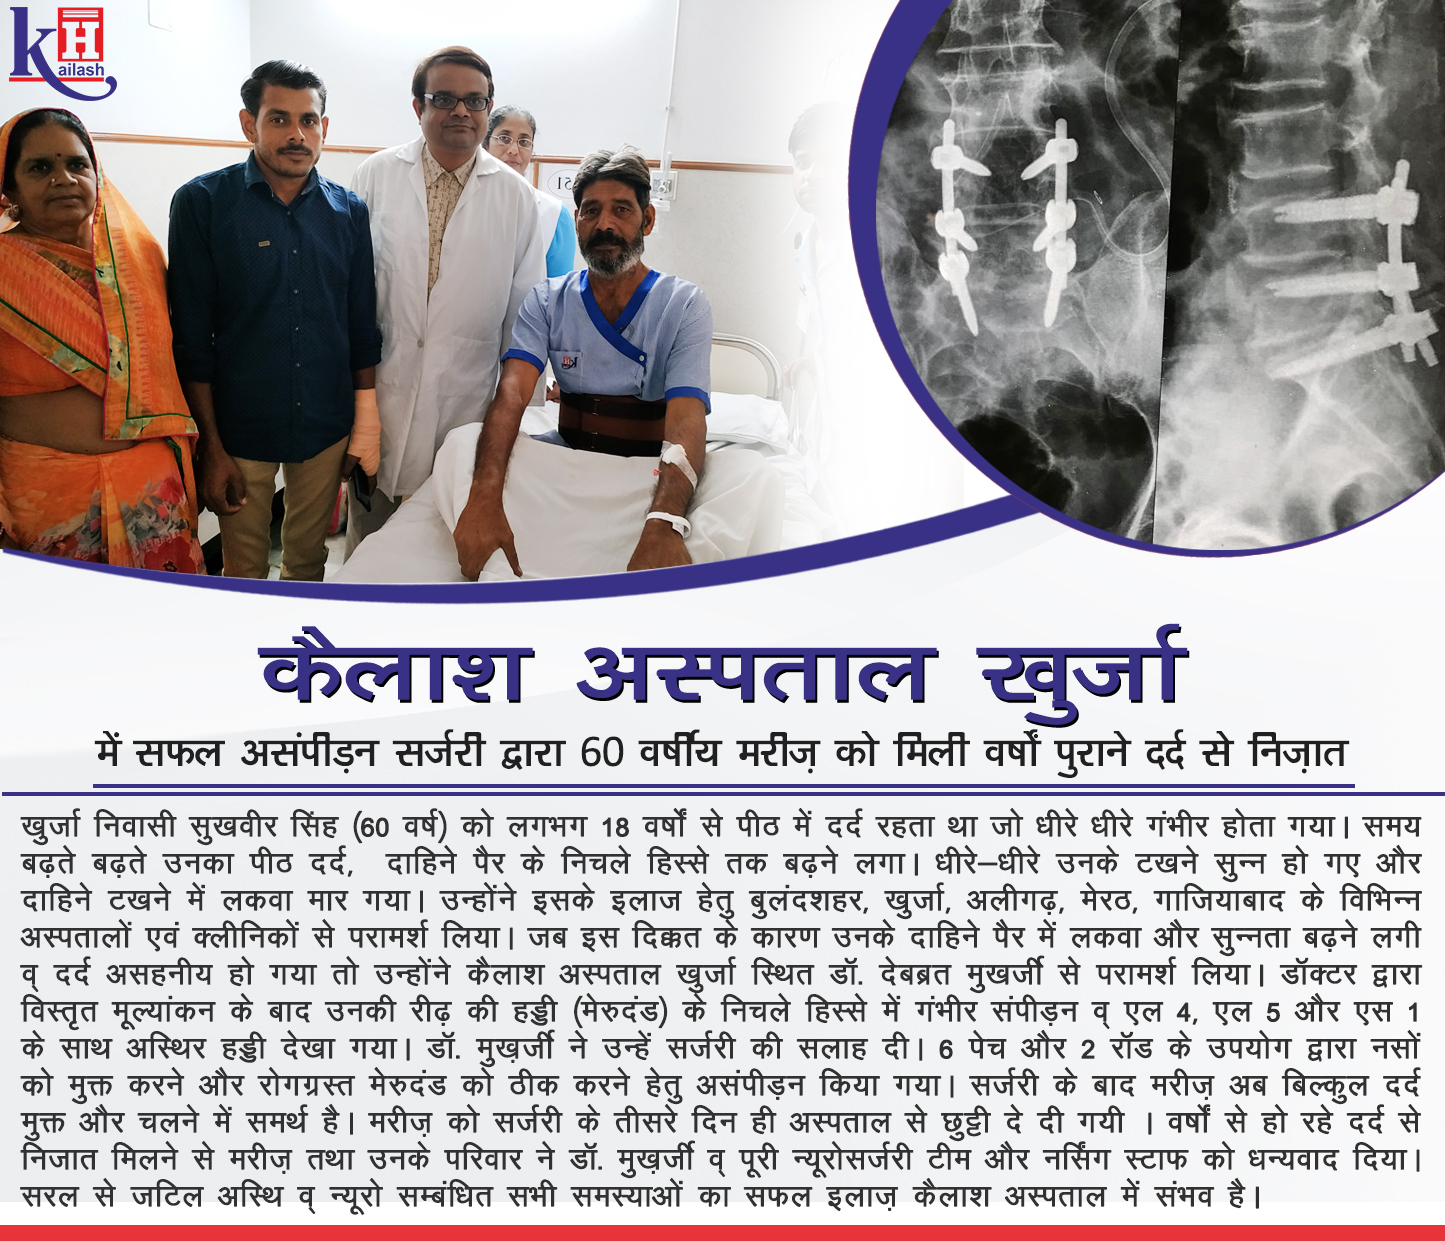 Successful treatment of 60yr old patient's Chronic Backpain through Decompression Surgery at Kailash Hospital, Khurja